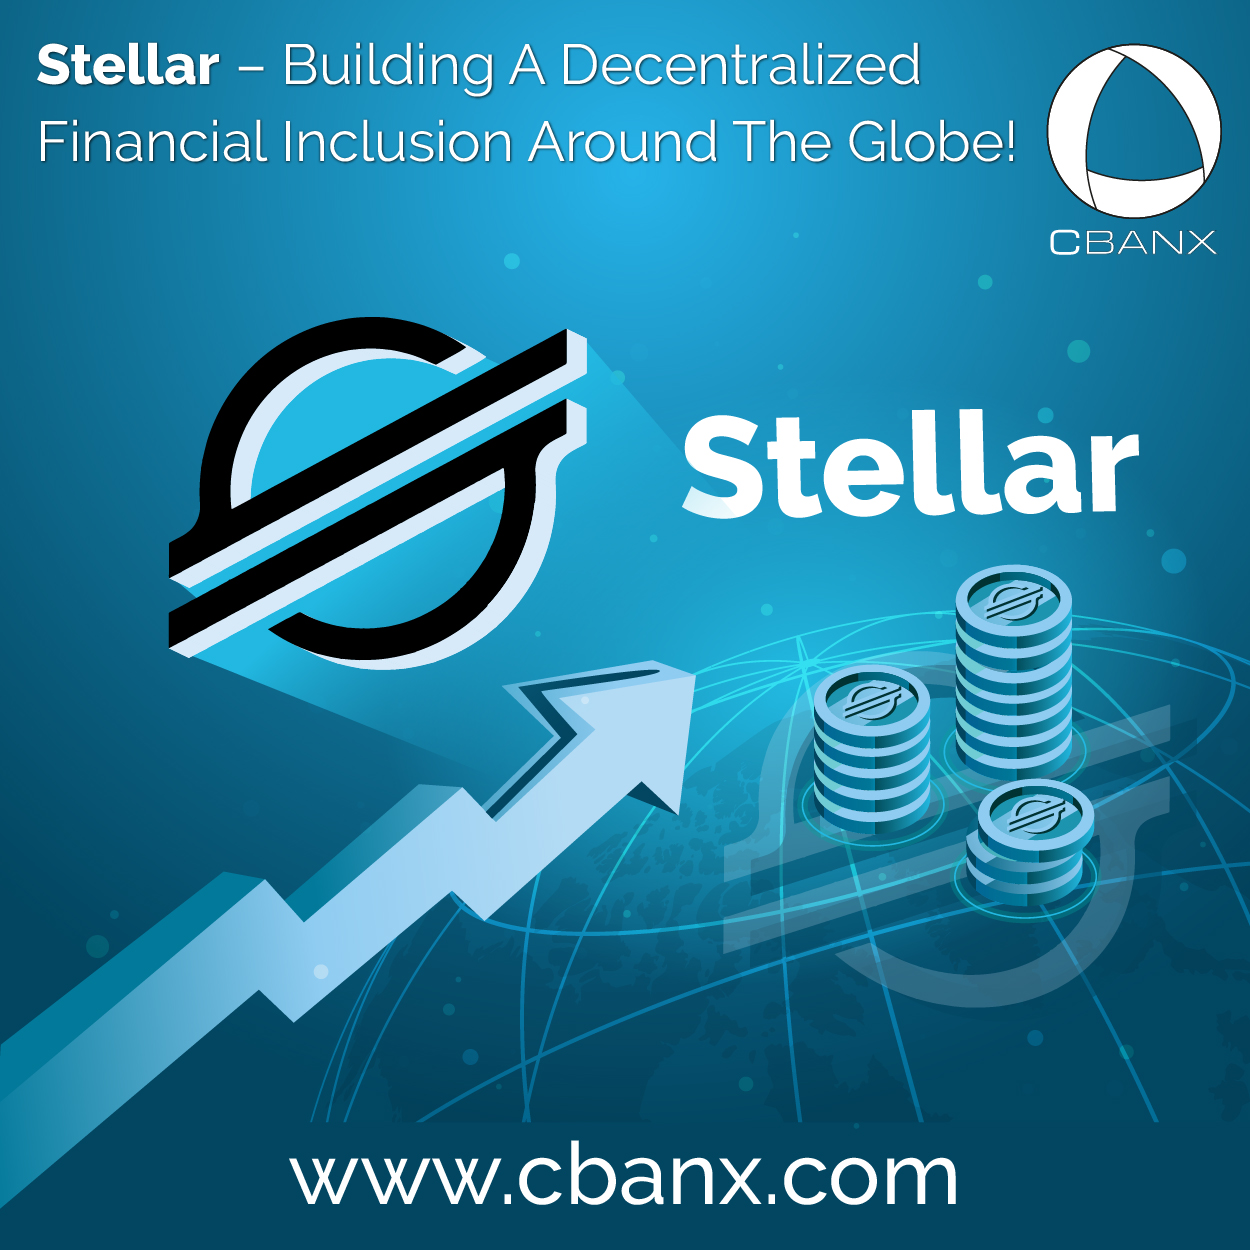 Stellar – Building A Decentralized Financial Inclusion Around The Globe!